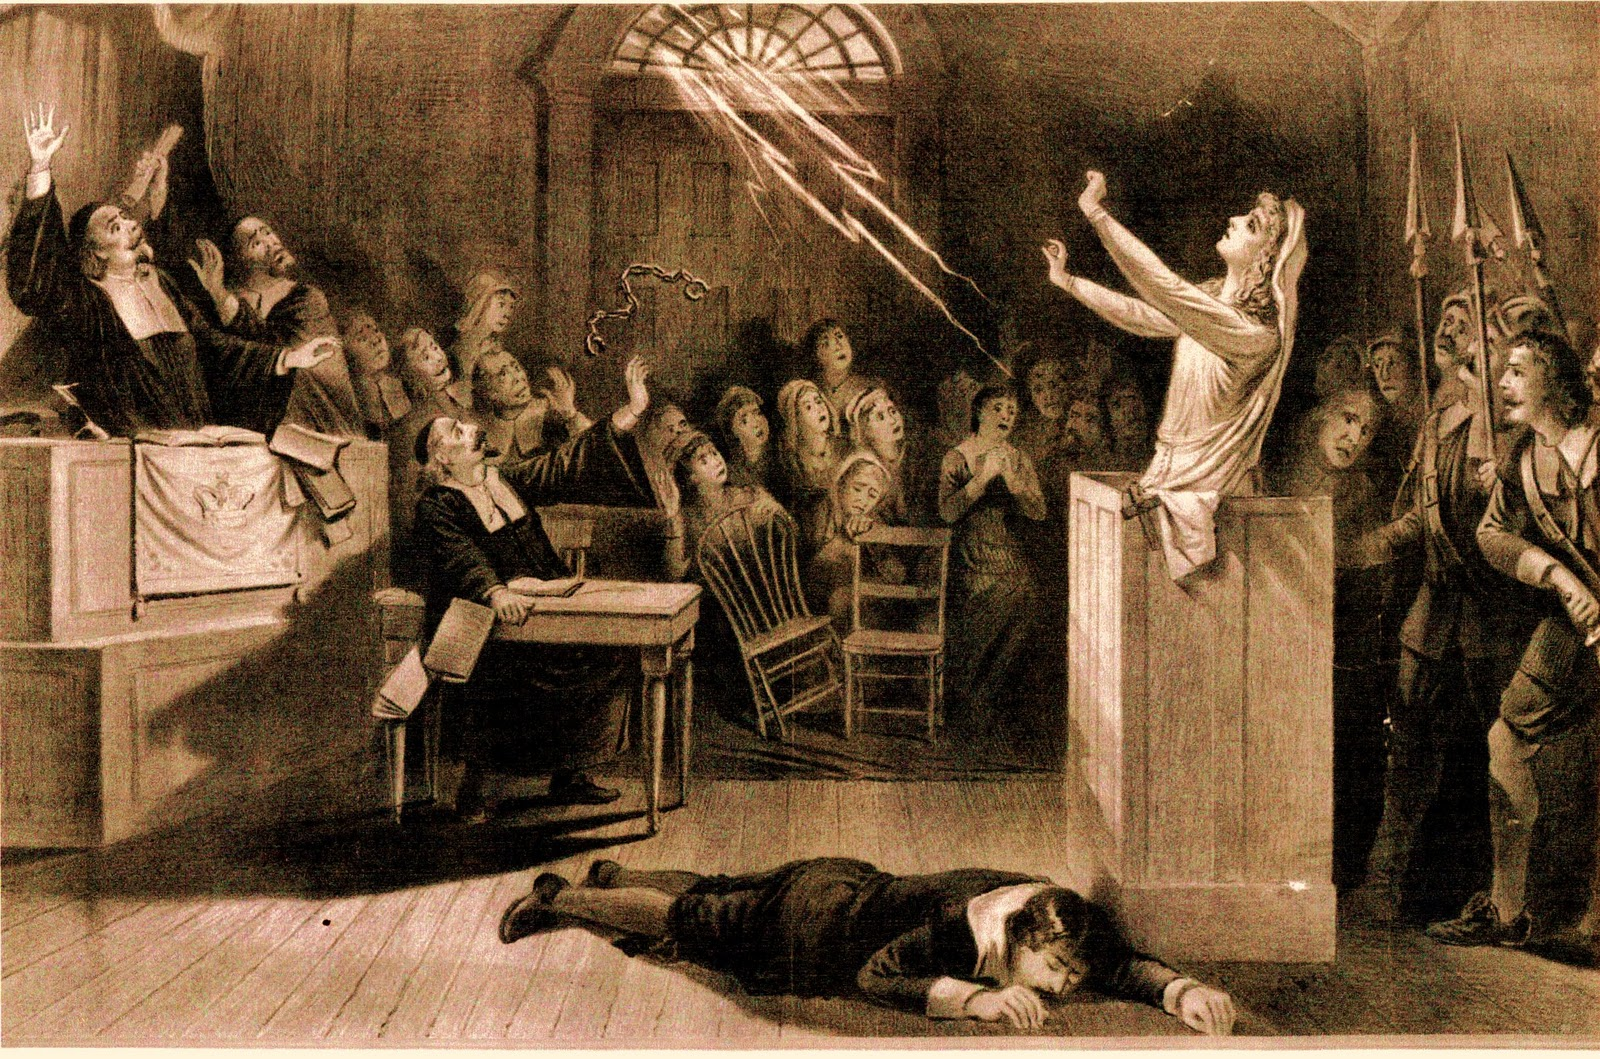 a report on the with trials of salem Chronology of events relating to the salem witchcraft trials images of the salem witchcraft trials map of salem village in 1692 ( w p upham) deodat lawson's report on witchcraft in salem powered by umkc school of law.